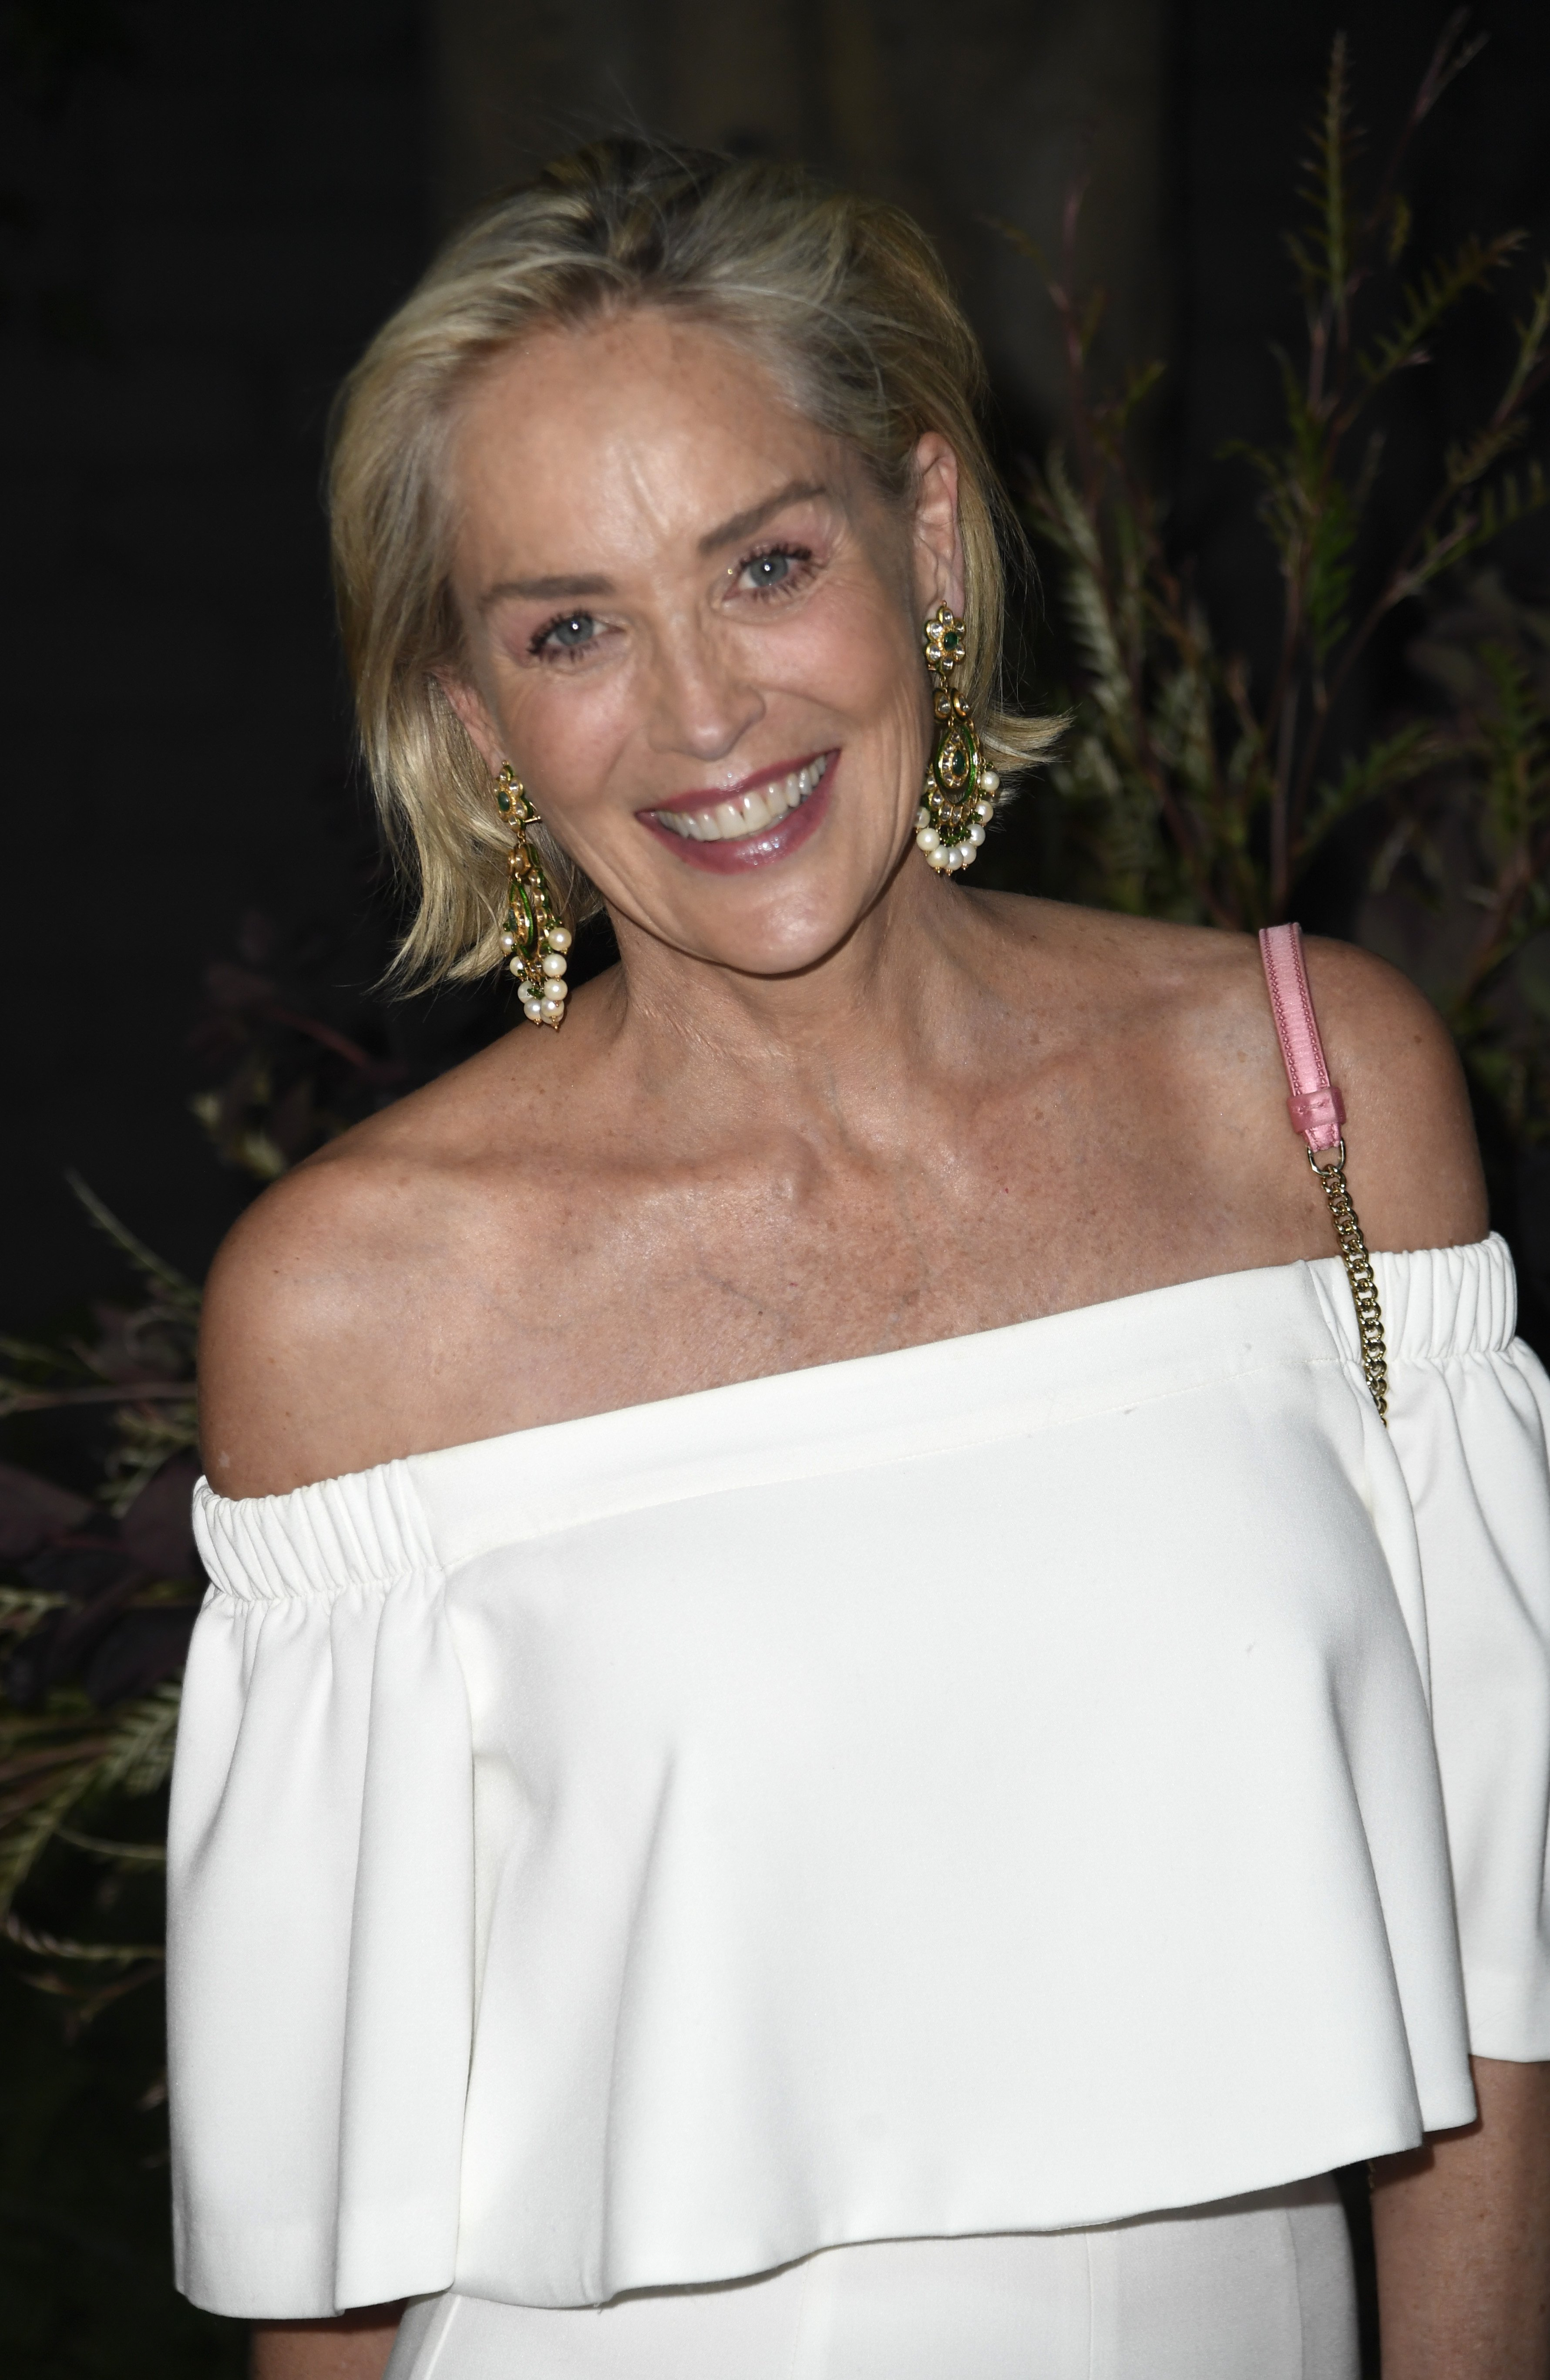 Sharon Stone attends the Brain Health Initiative 100th Anniversary Of Women's Suffrage Gala at Eric Buterbaugh Los Angeles on July 17, 2019, in Los Angeles, California. | Source: Getty Images.